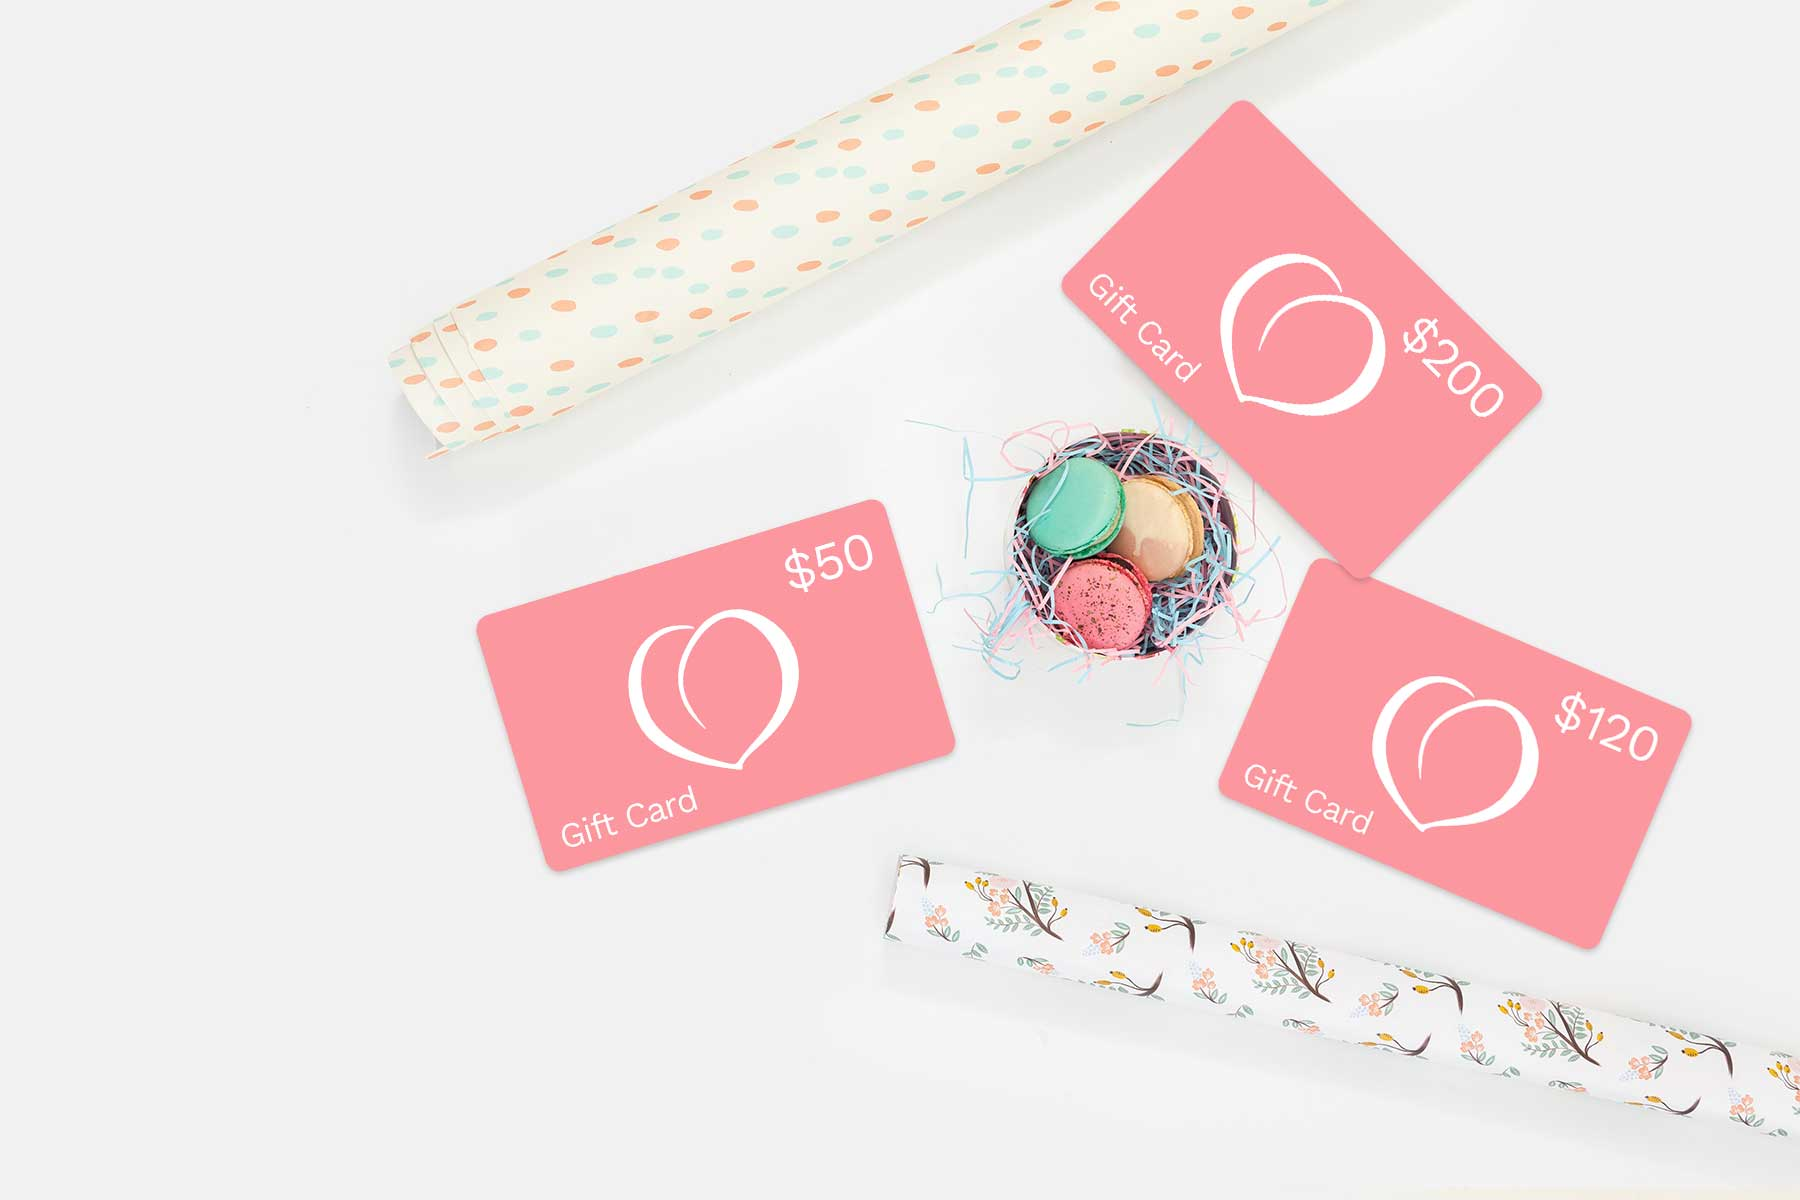 Buy Peachymama Gift Cards For New Mothers Breastfeeding Clothing Sale